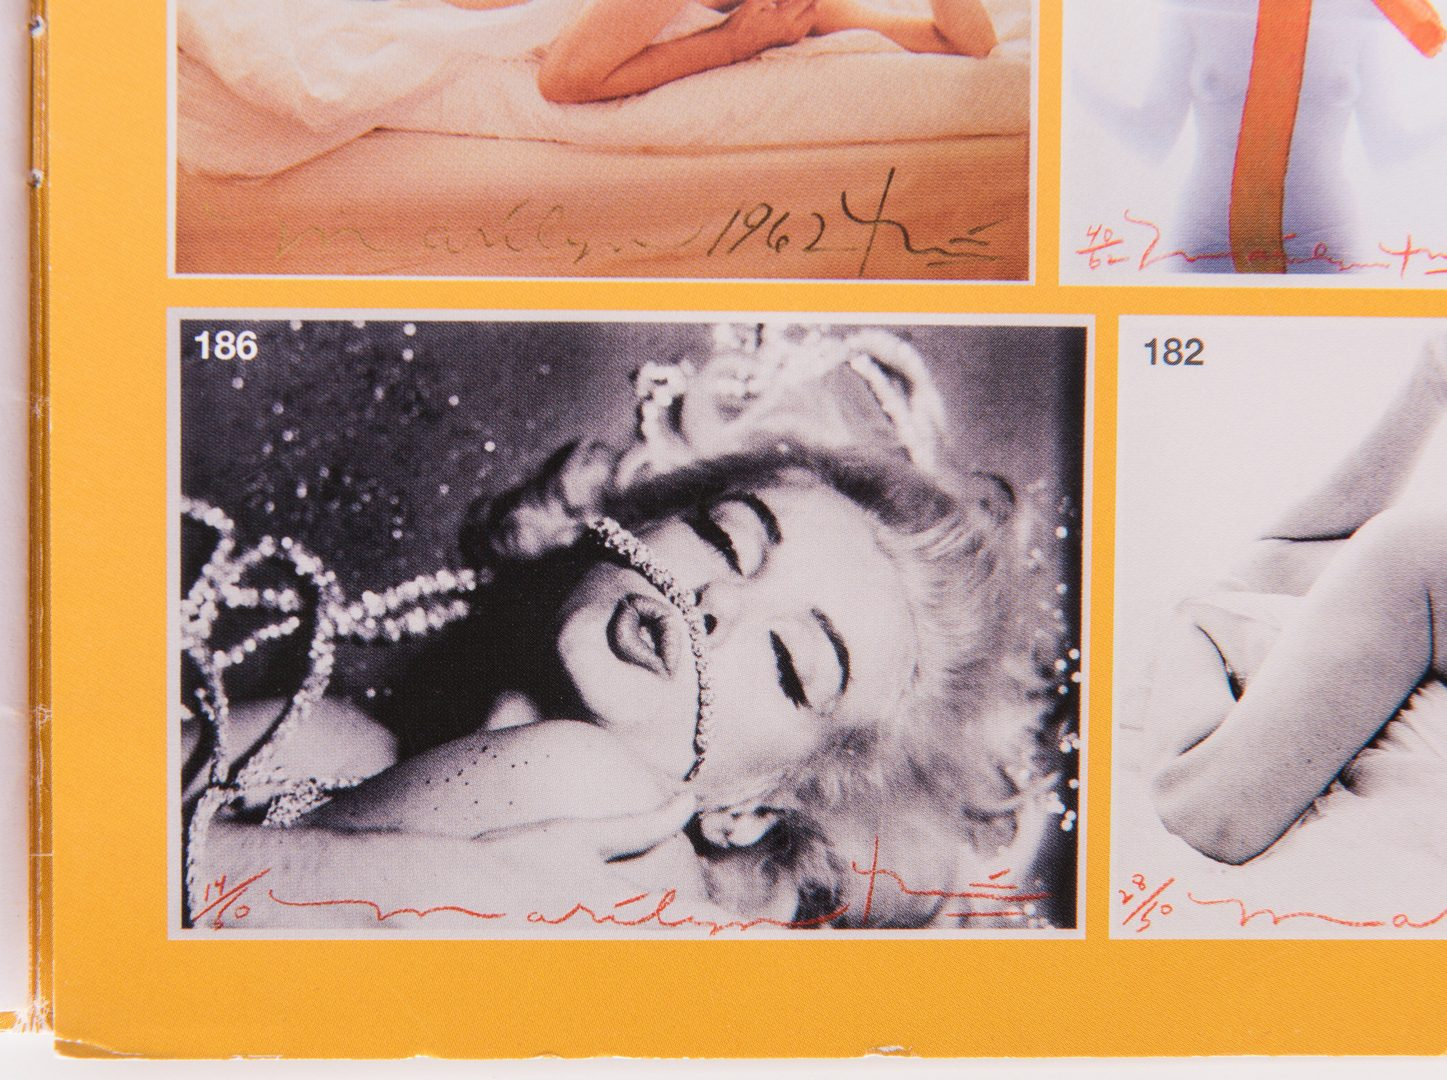 Lot 551: Bert Stern Marilyn Monroe Last Sitting signed photograph plus 2 Books